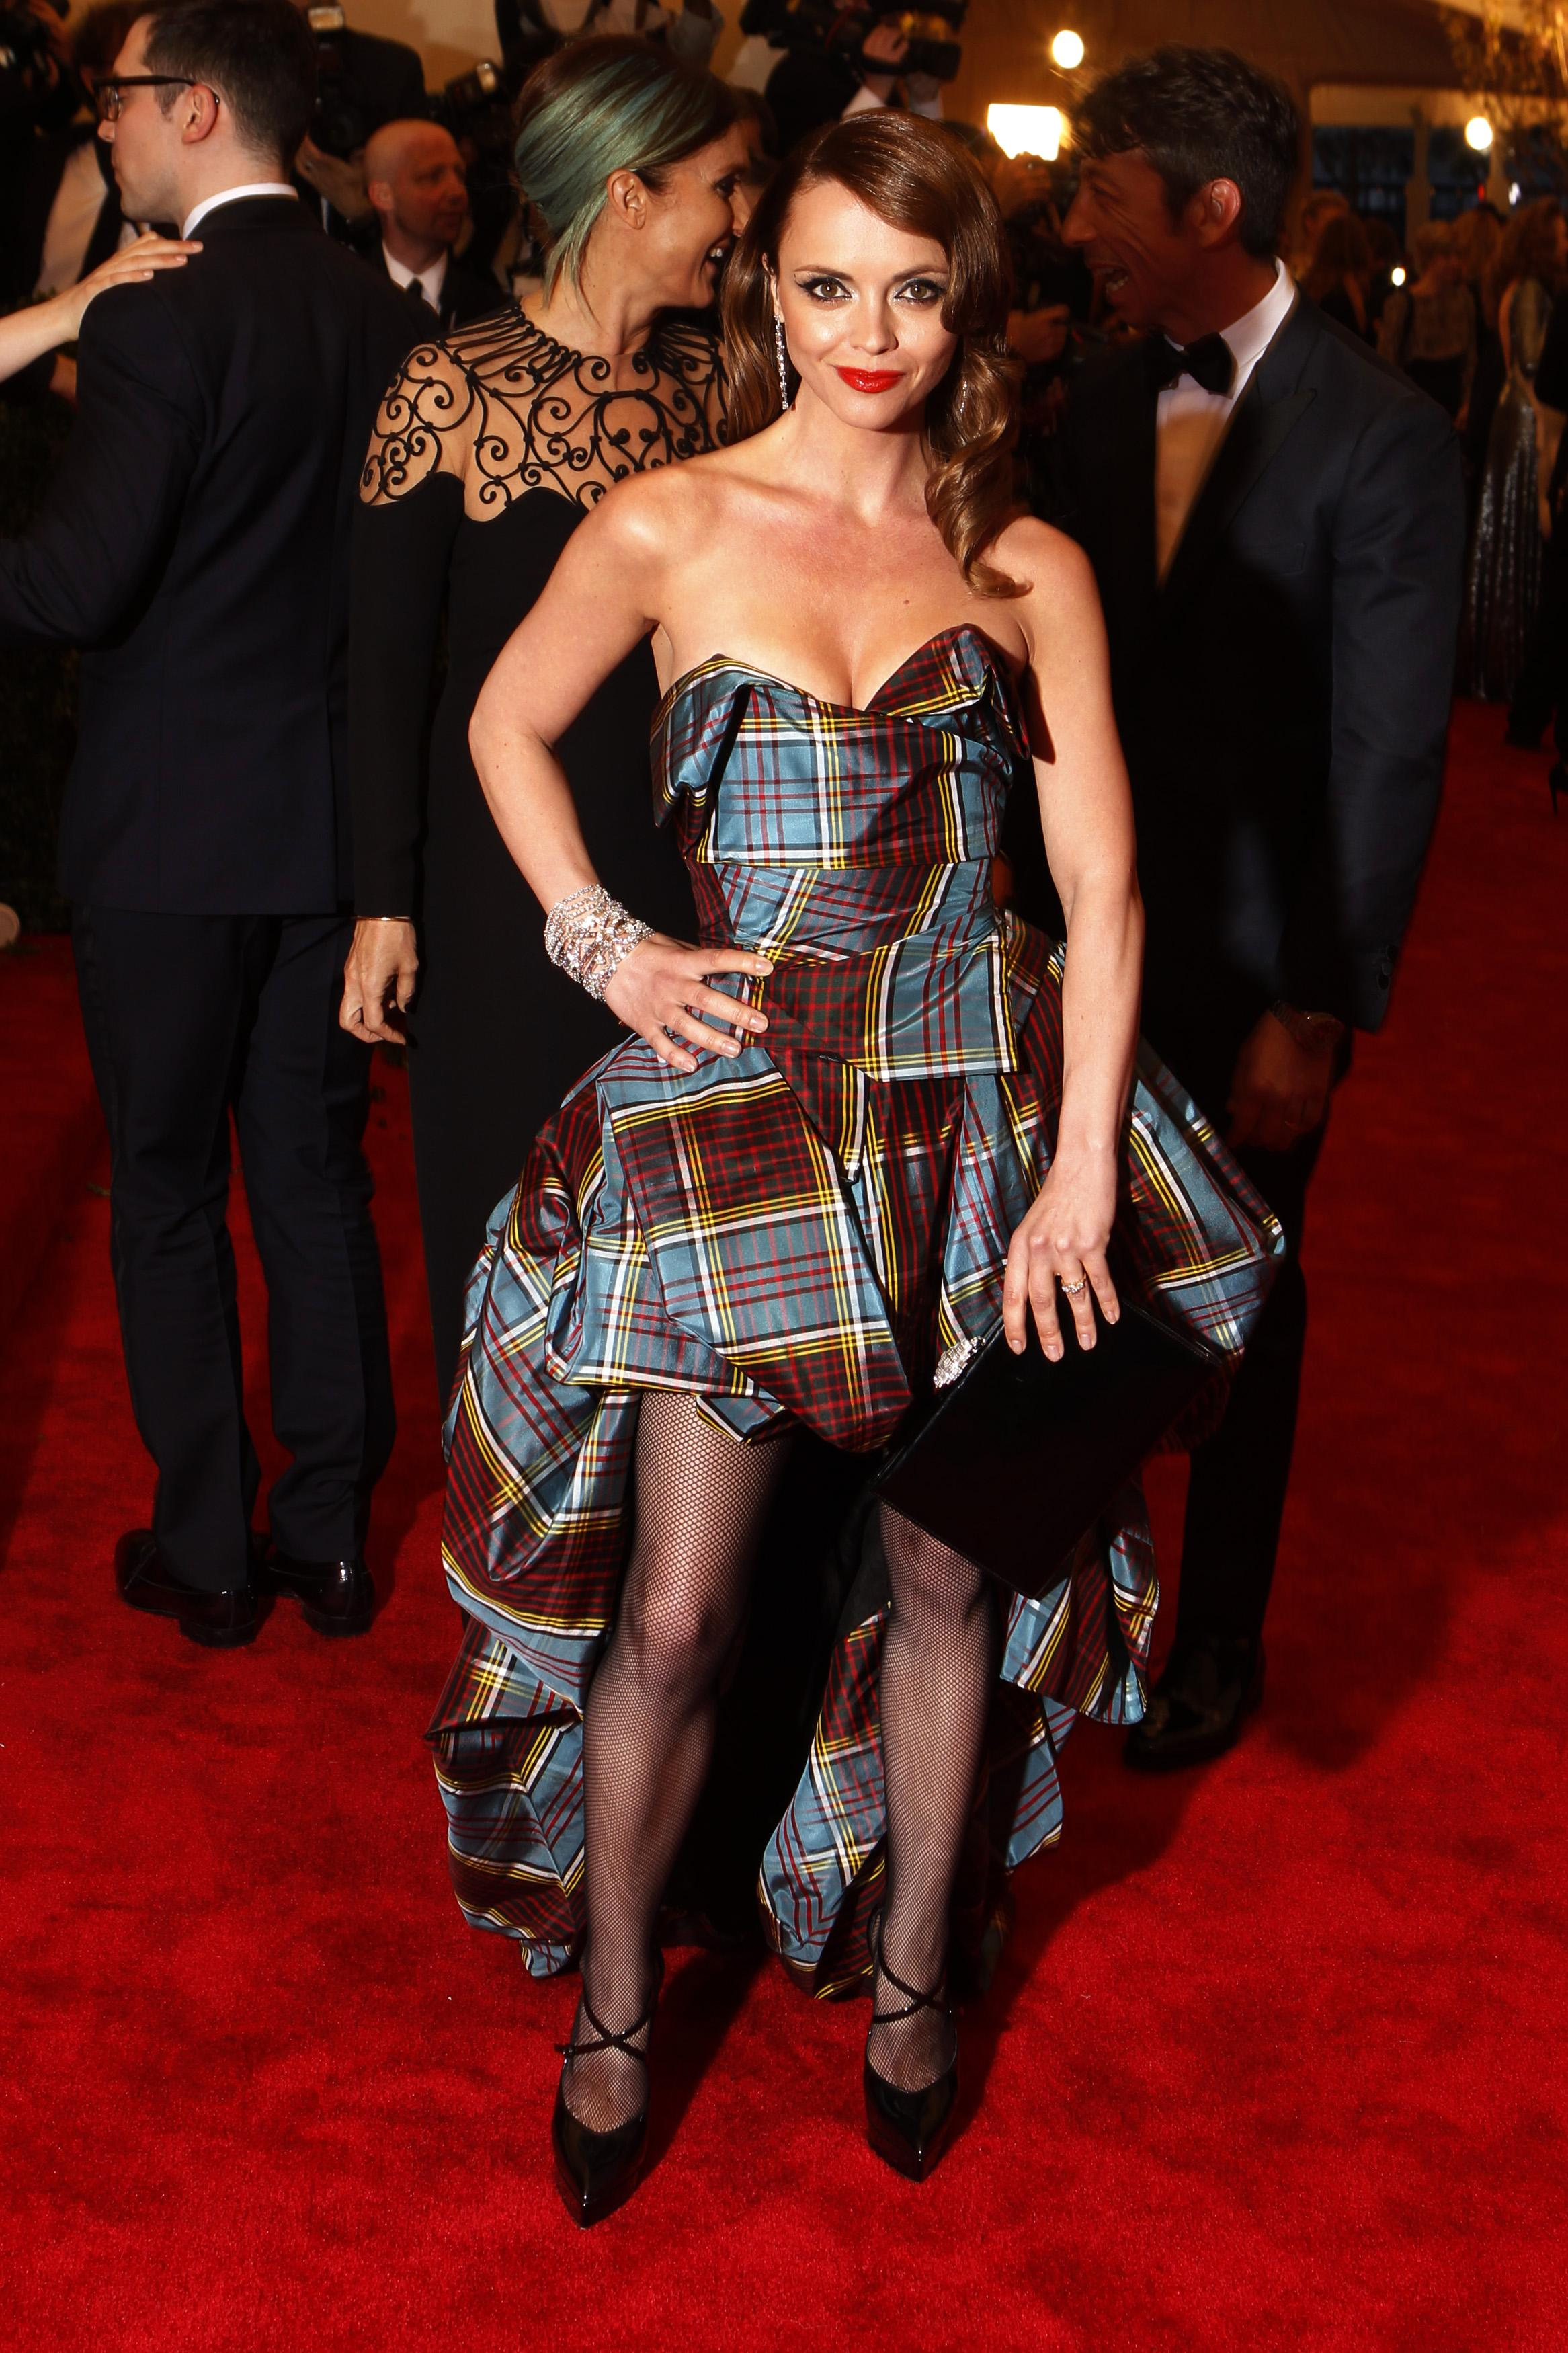 Christina Ricci at the 2013 Met Gala